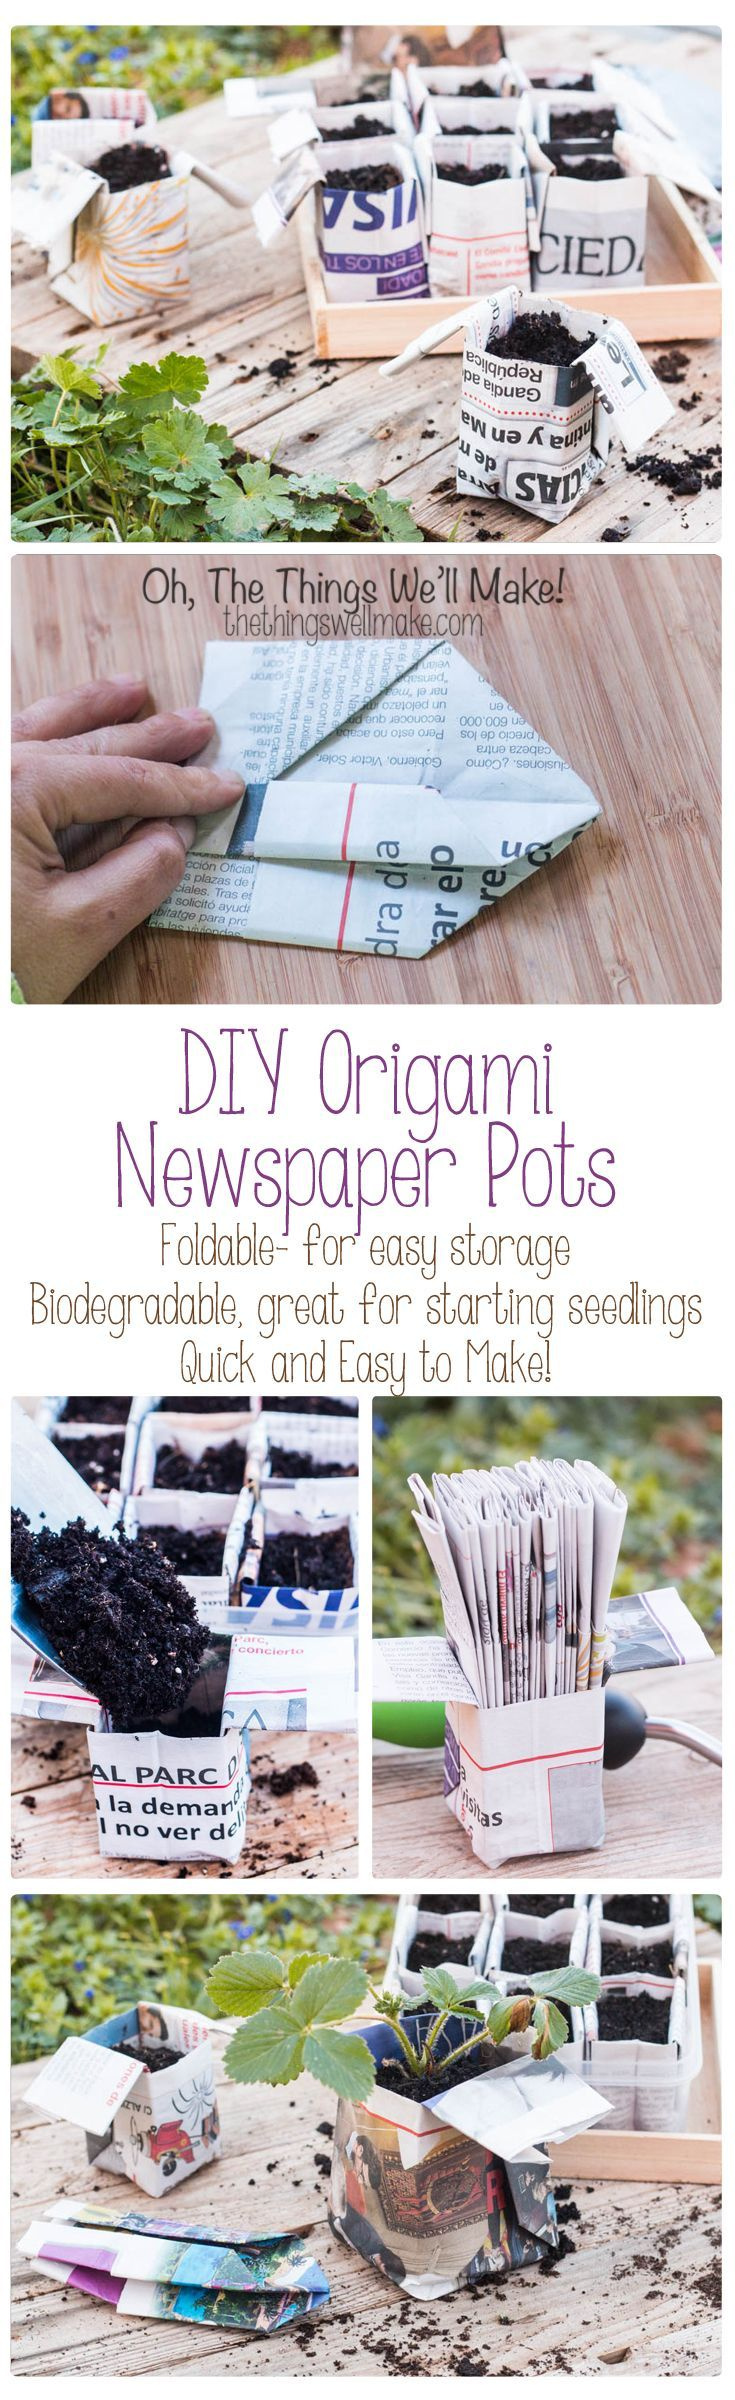 Fold your own quick and easy origami newspaper pots for your seedlings! These can be folded in advanced and stored in the folded position to save space. Because they are biodegradable, you can plant the seedlings with their pot and don't have to disturb